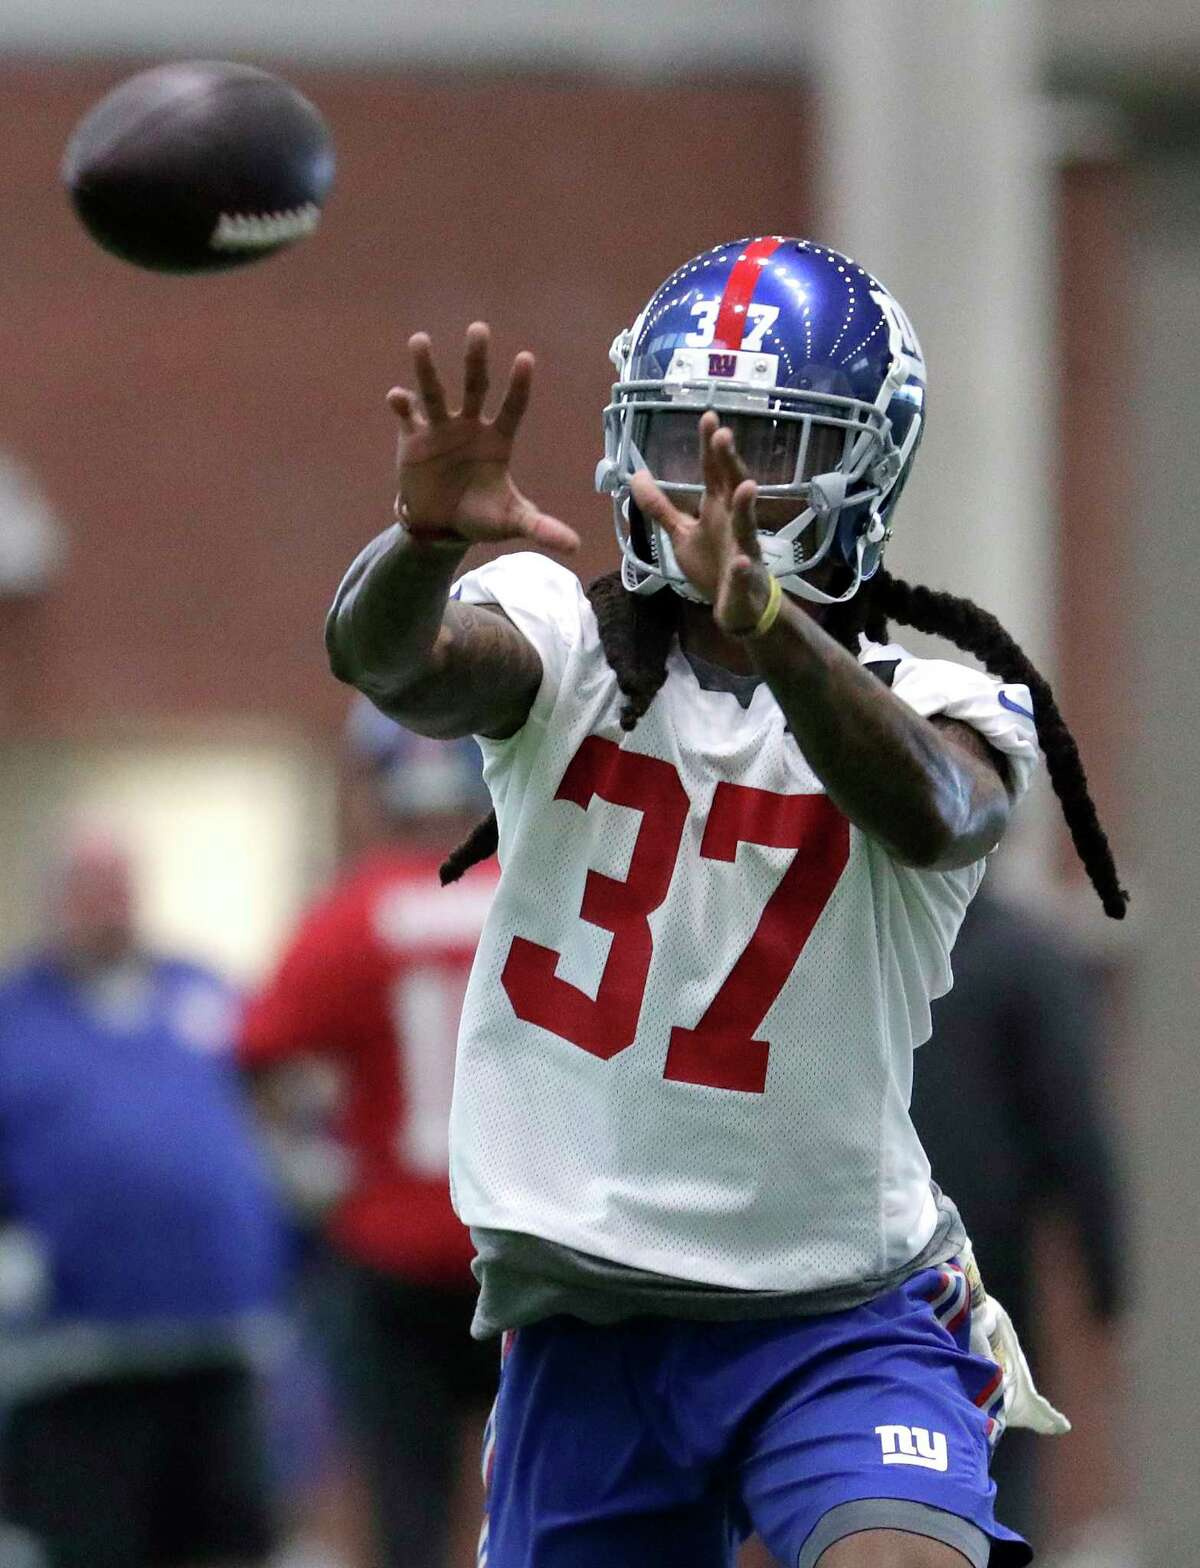 New York Giants cornerback B.W. Webb makes a catch during NFL football training camp, Wednesday, April 25, 2018, in East Rutherford, N.J. (AP Photo/Julio Cortez)